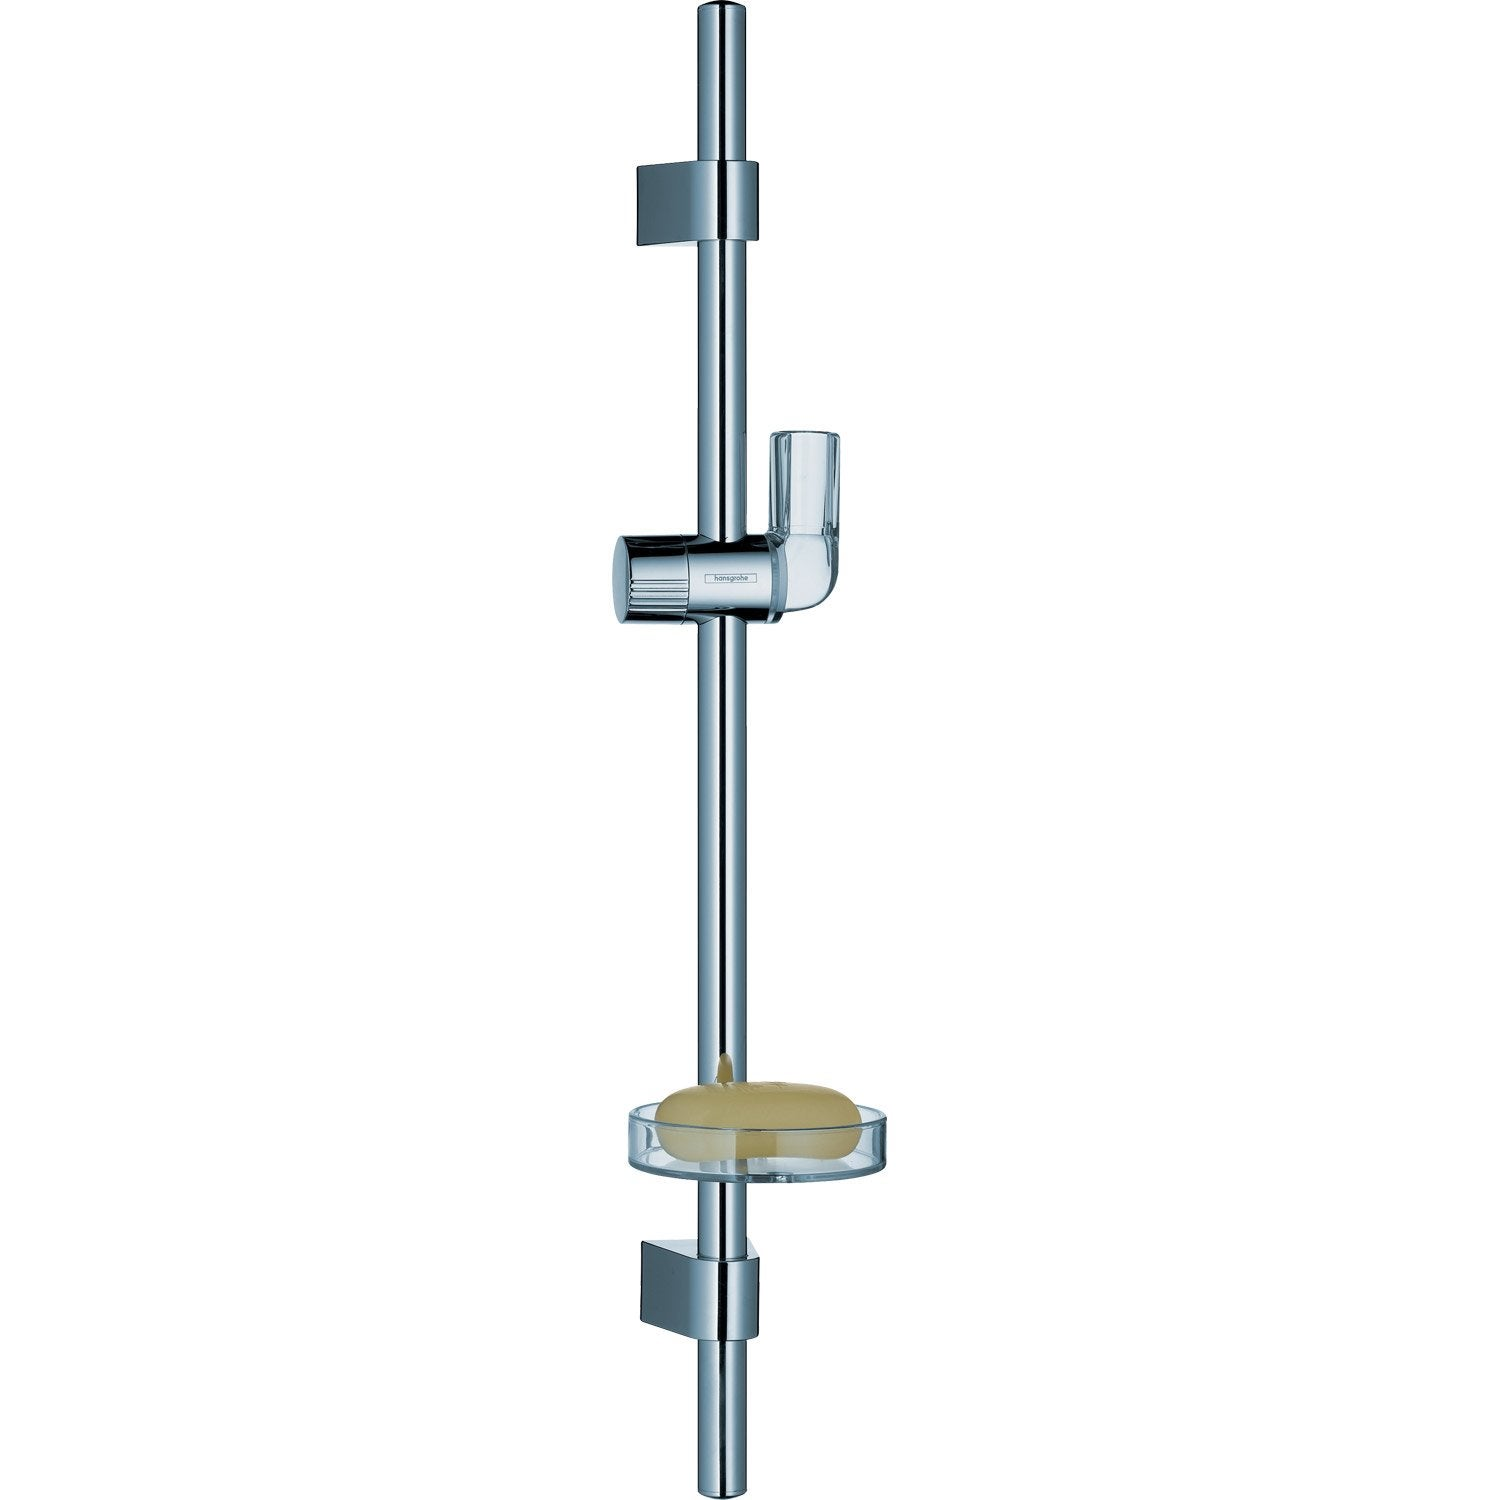 Barre de douche chrome hansgrohe unica vario leroy merlin - Demonter barre de douche ...